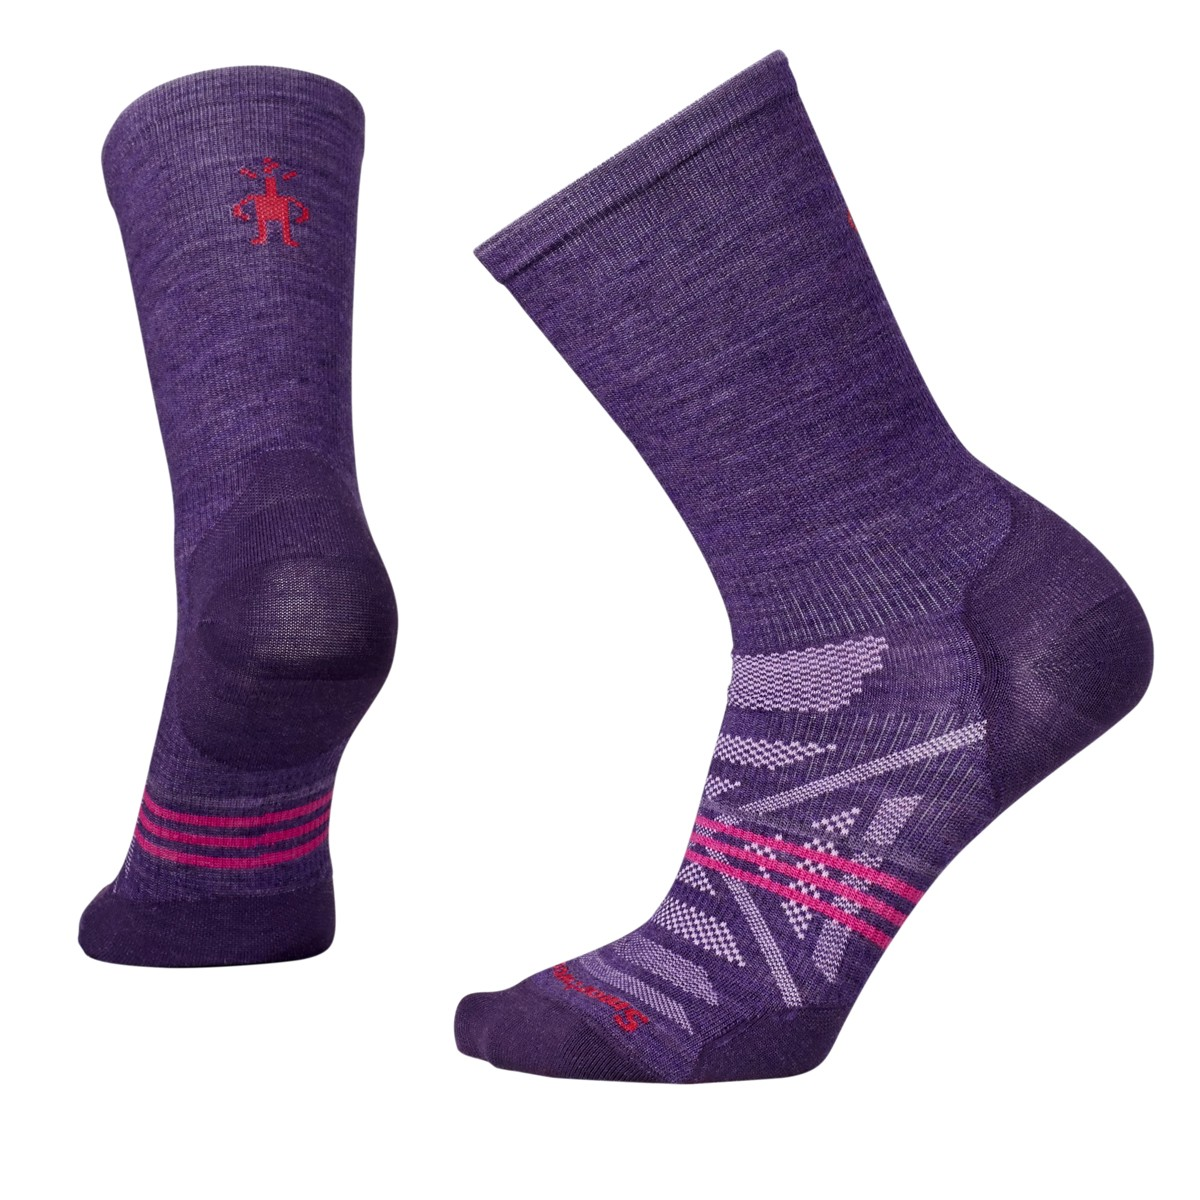 Smartwool Women's PhD Outdoor Ultra Light Crew Sock - SW001304